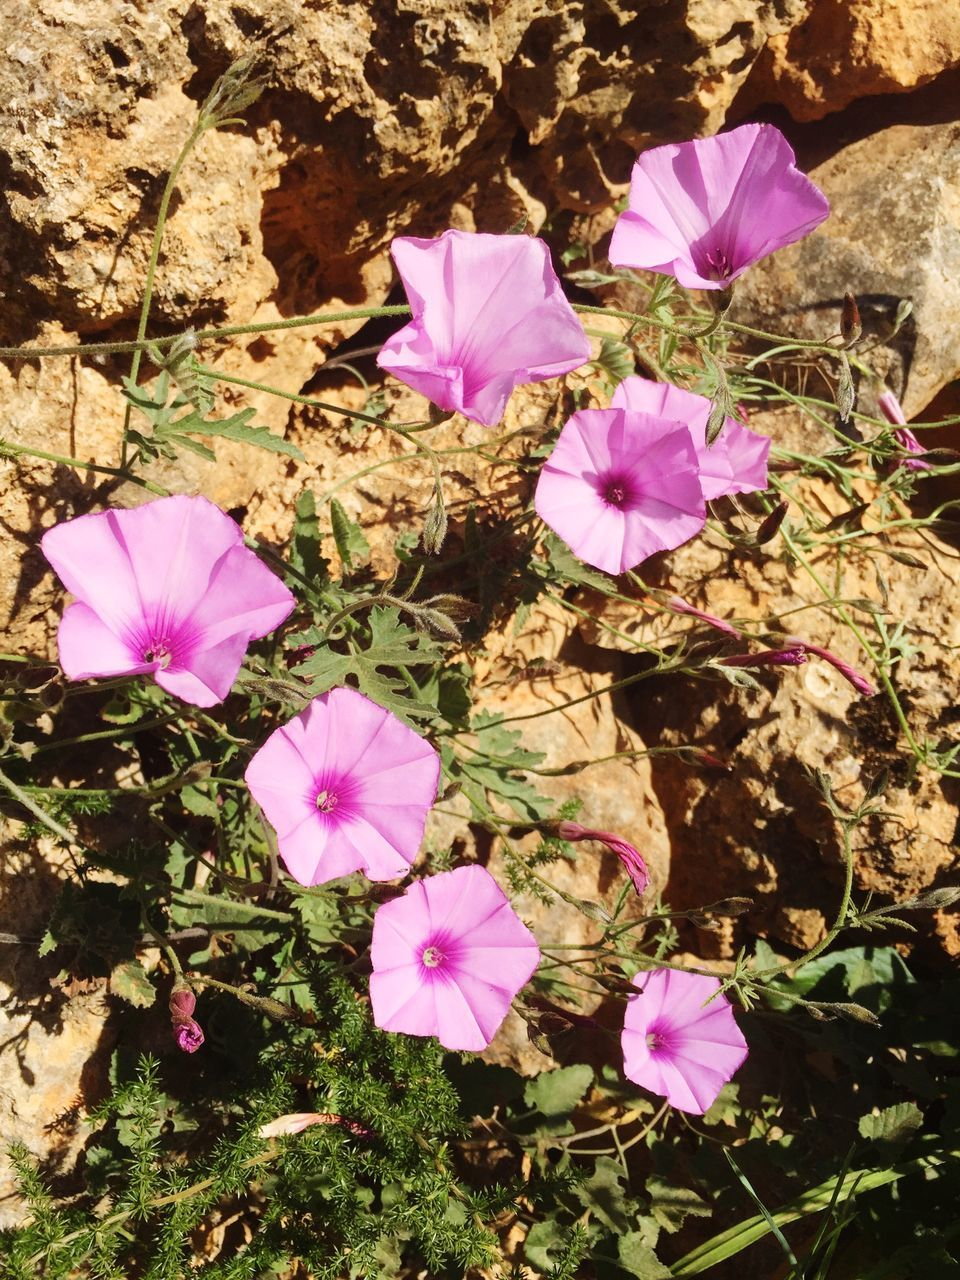 flower, petal, pink color, purple, fragility, growth, flower head, beauty in nature, nature, high angle view, no people, freshness, plant, day, outdoors, blooming, close-up, petunia, crocus, periwinkle